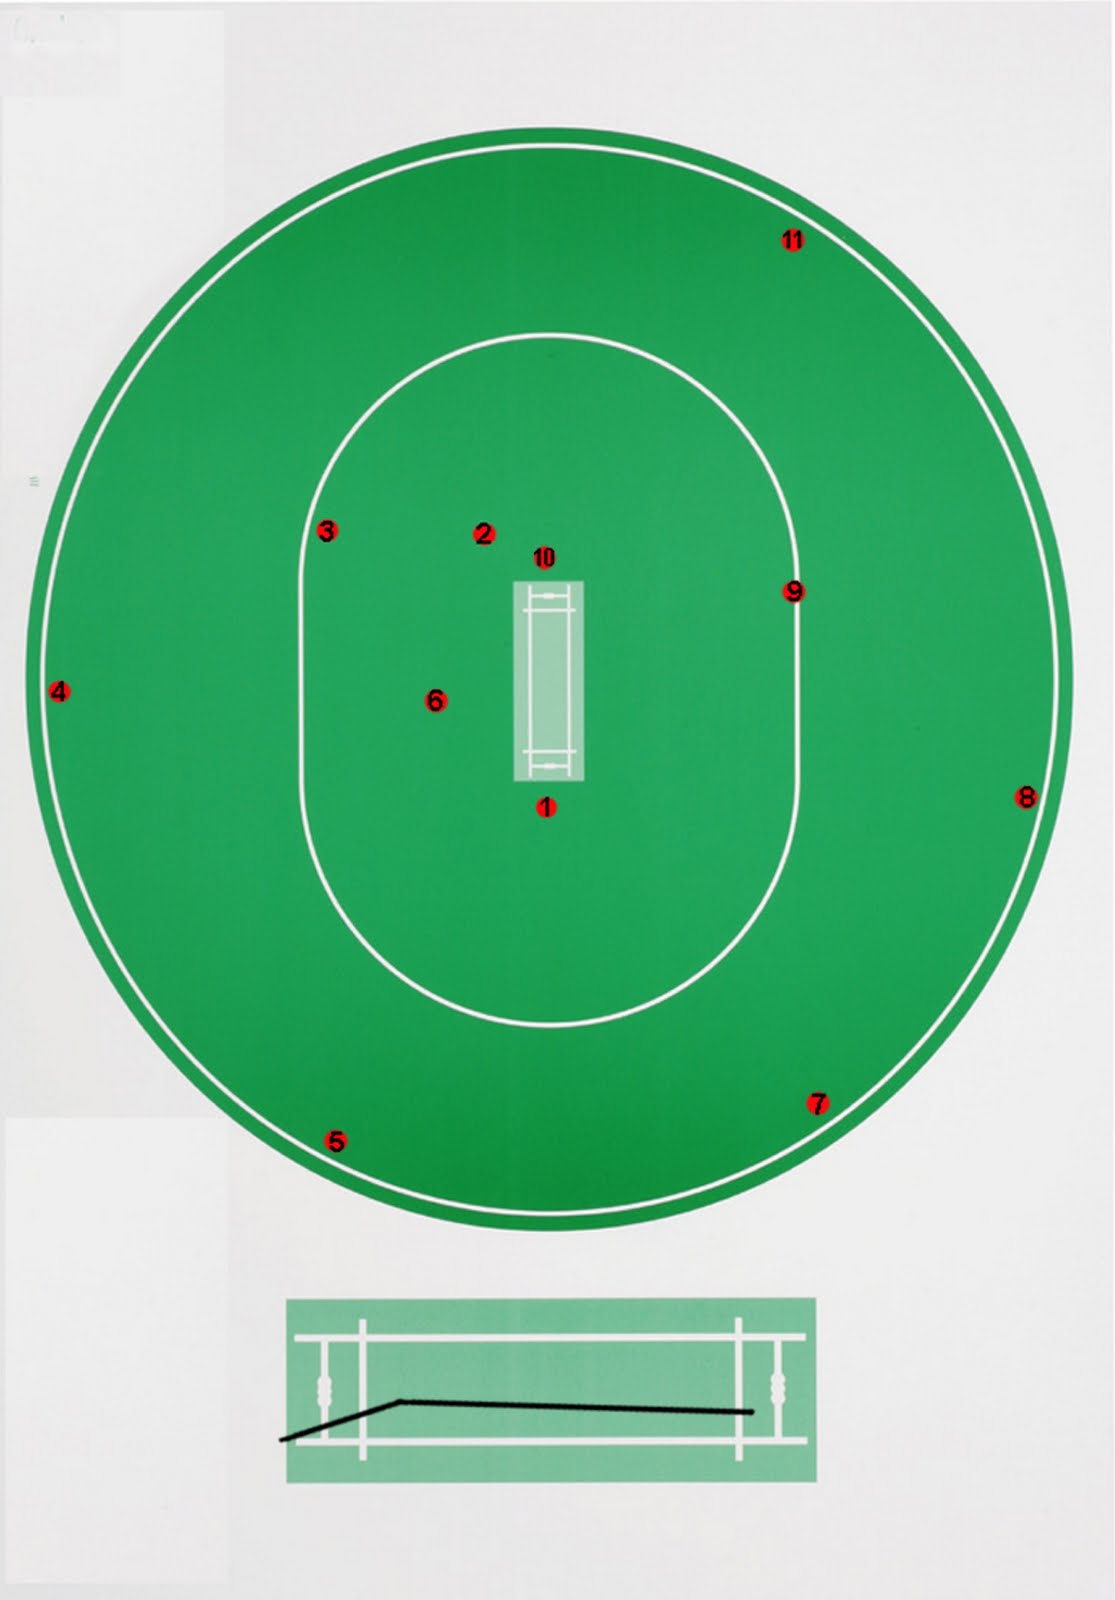 here s another warne field for t20 not a great deal of difference from the former post the only real difference is that the cover fielder is a lot closer  [ 1115 x 1600 Pixel ]